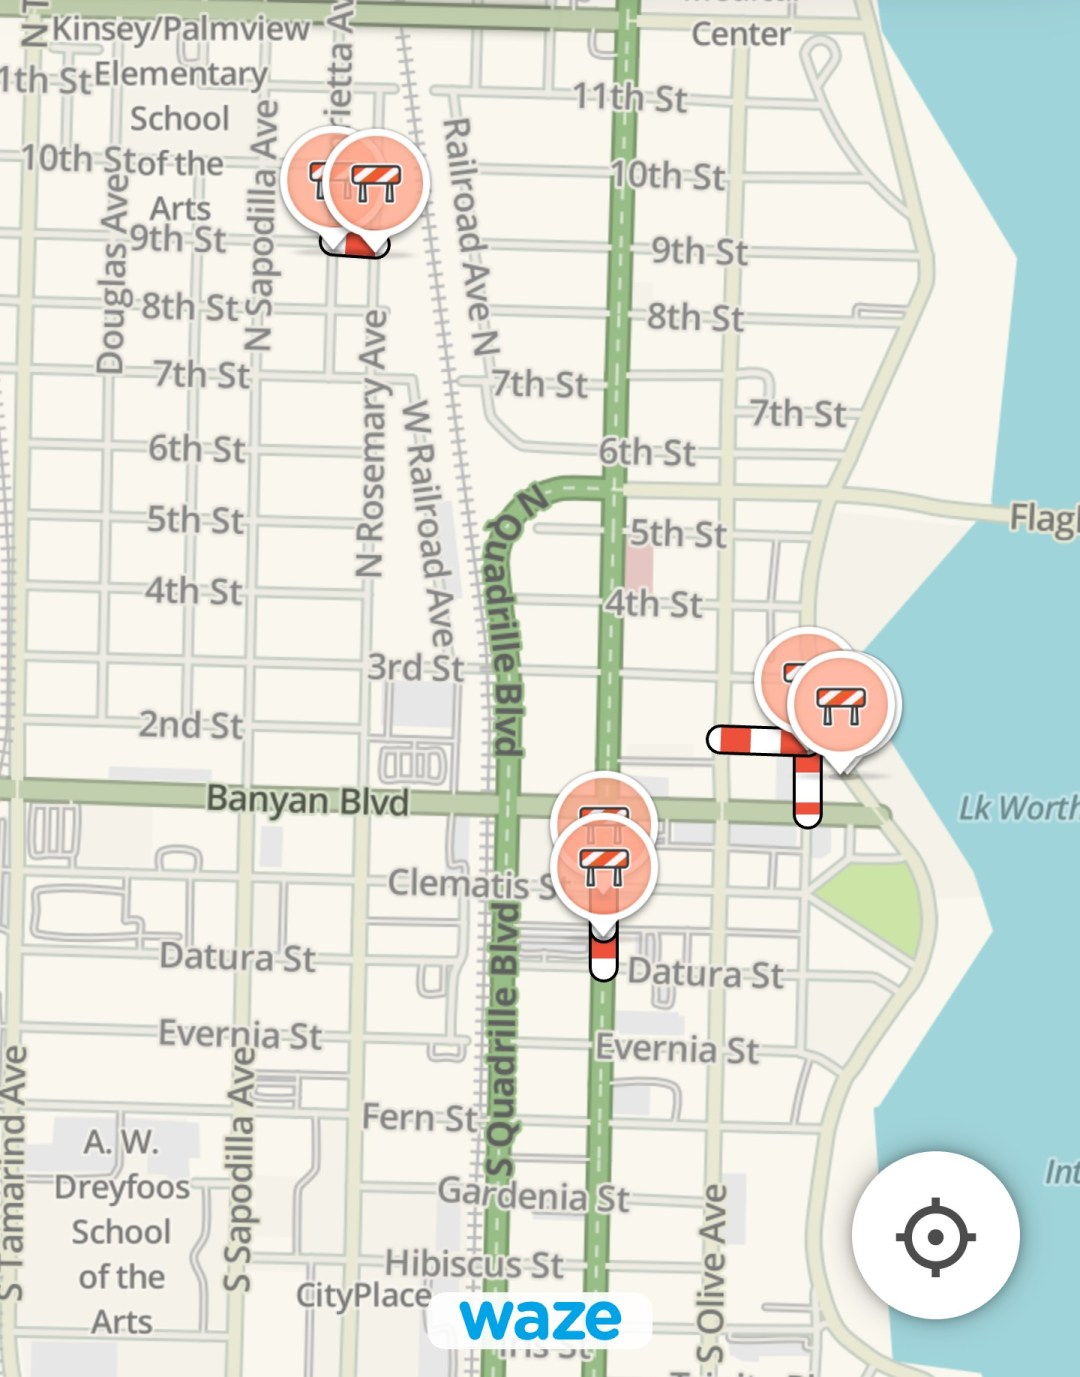 Downtown road closures seen on Waze